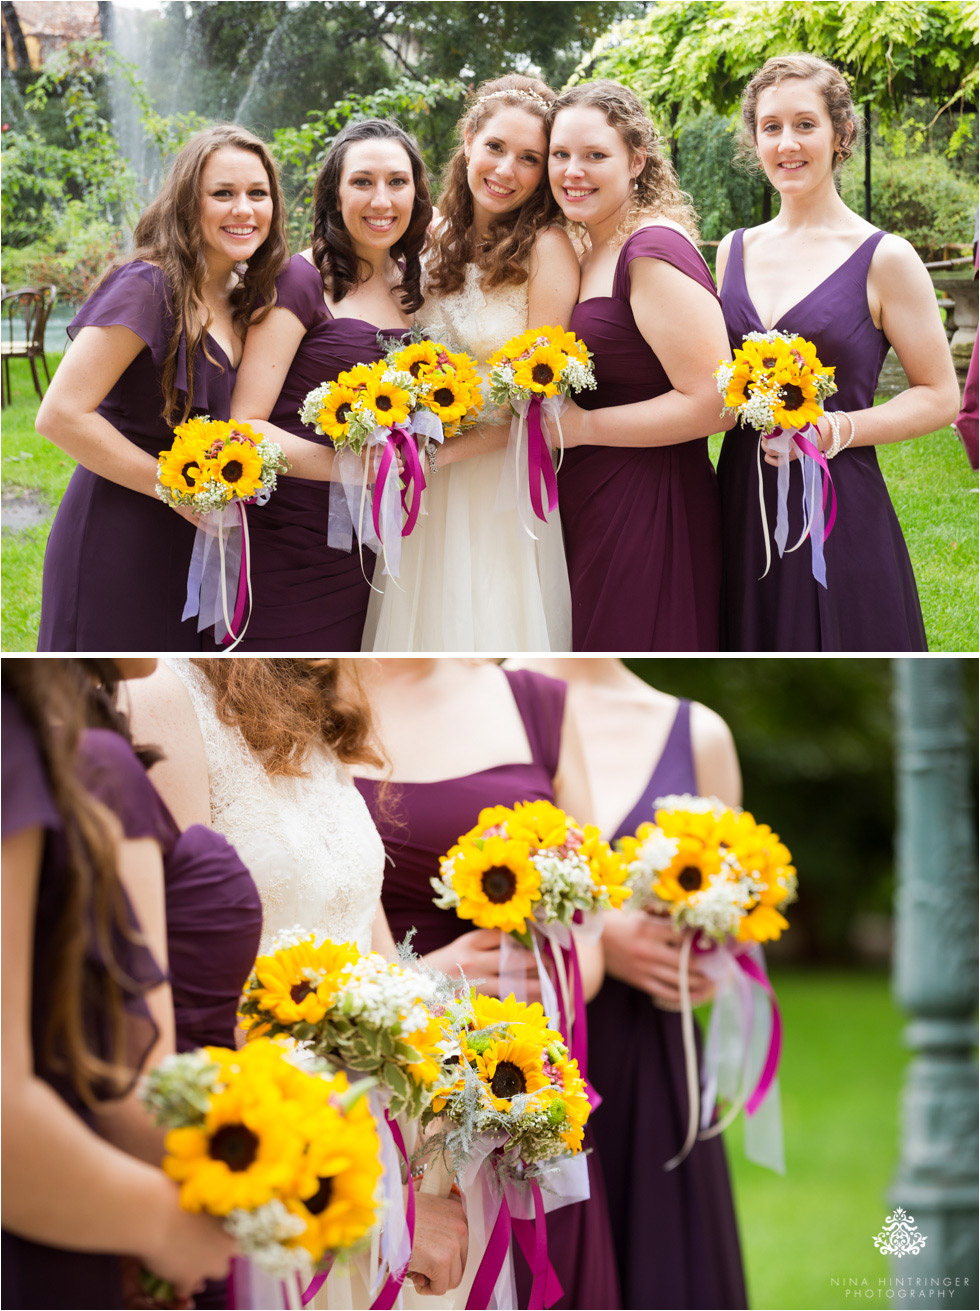 Bridesmaids at Villa Damiani in Bassano del Grappa, Italy - Blog of Nina Hintringer Photography - Wedding Photography, Wedding Reportage and Destination Weddings